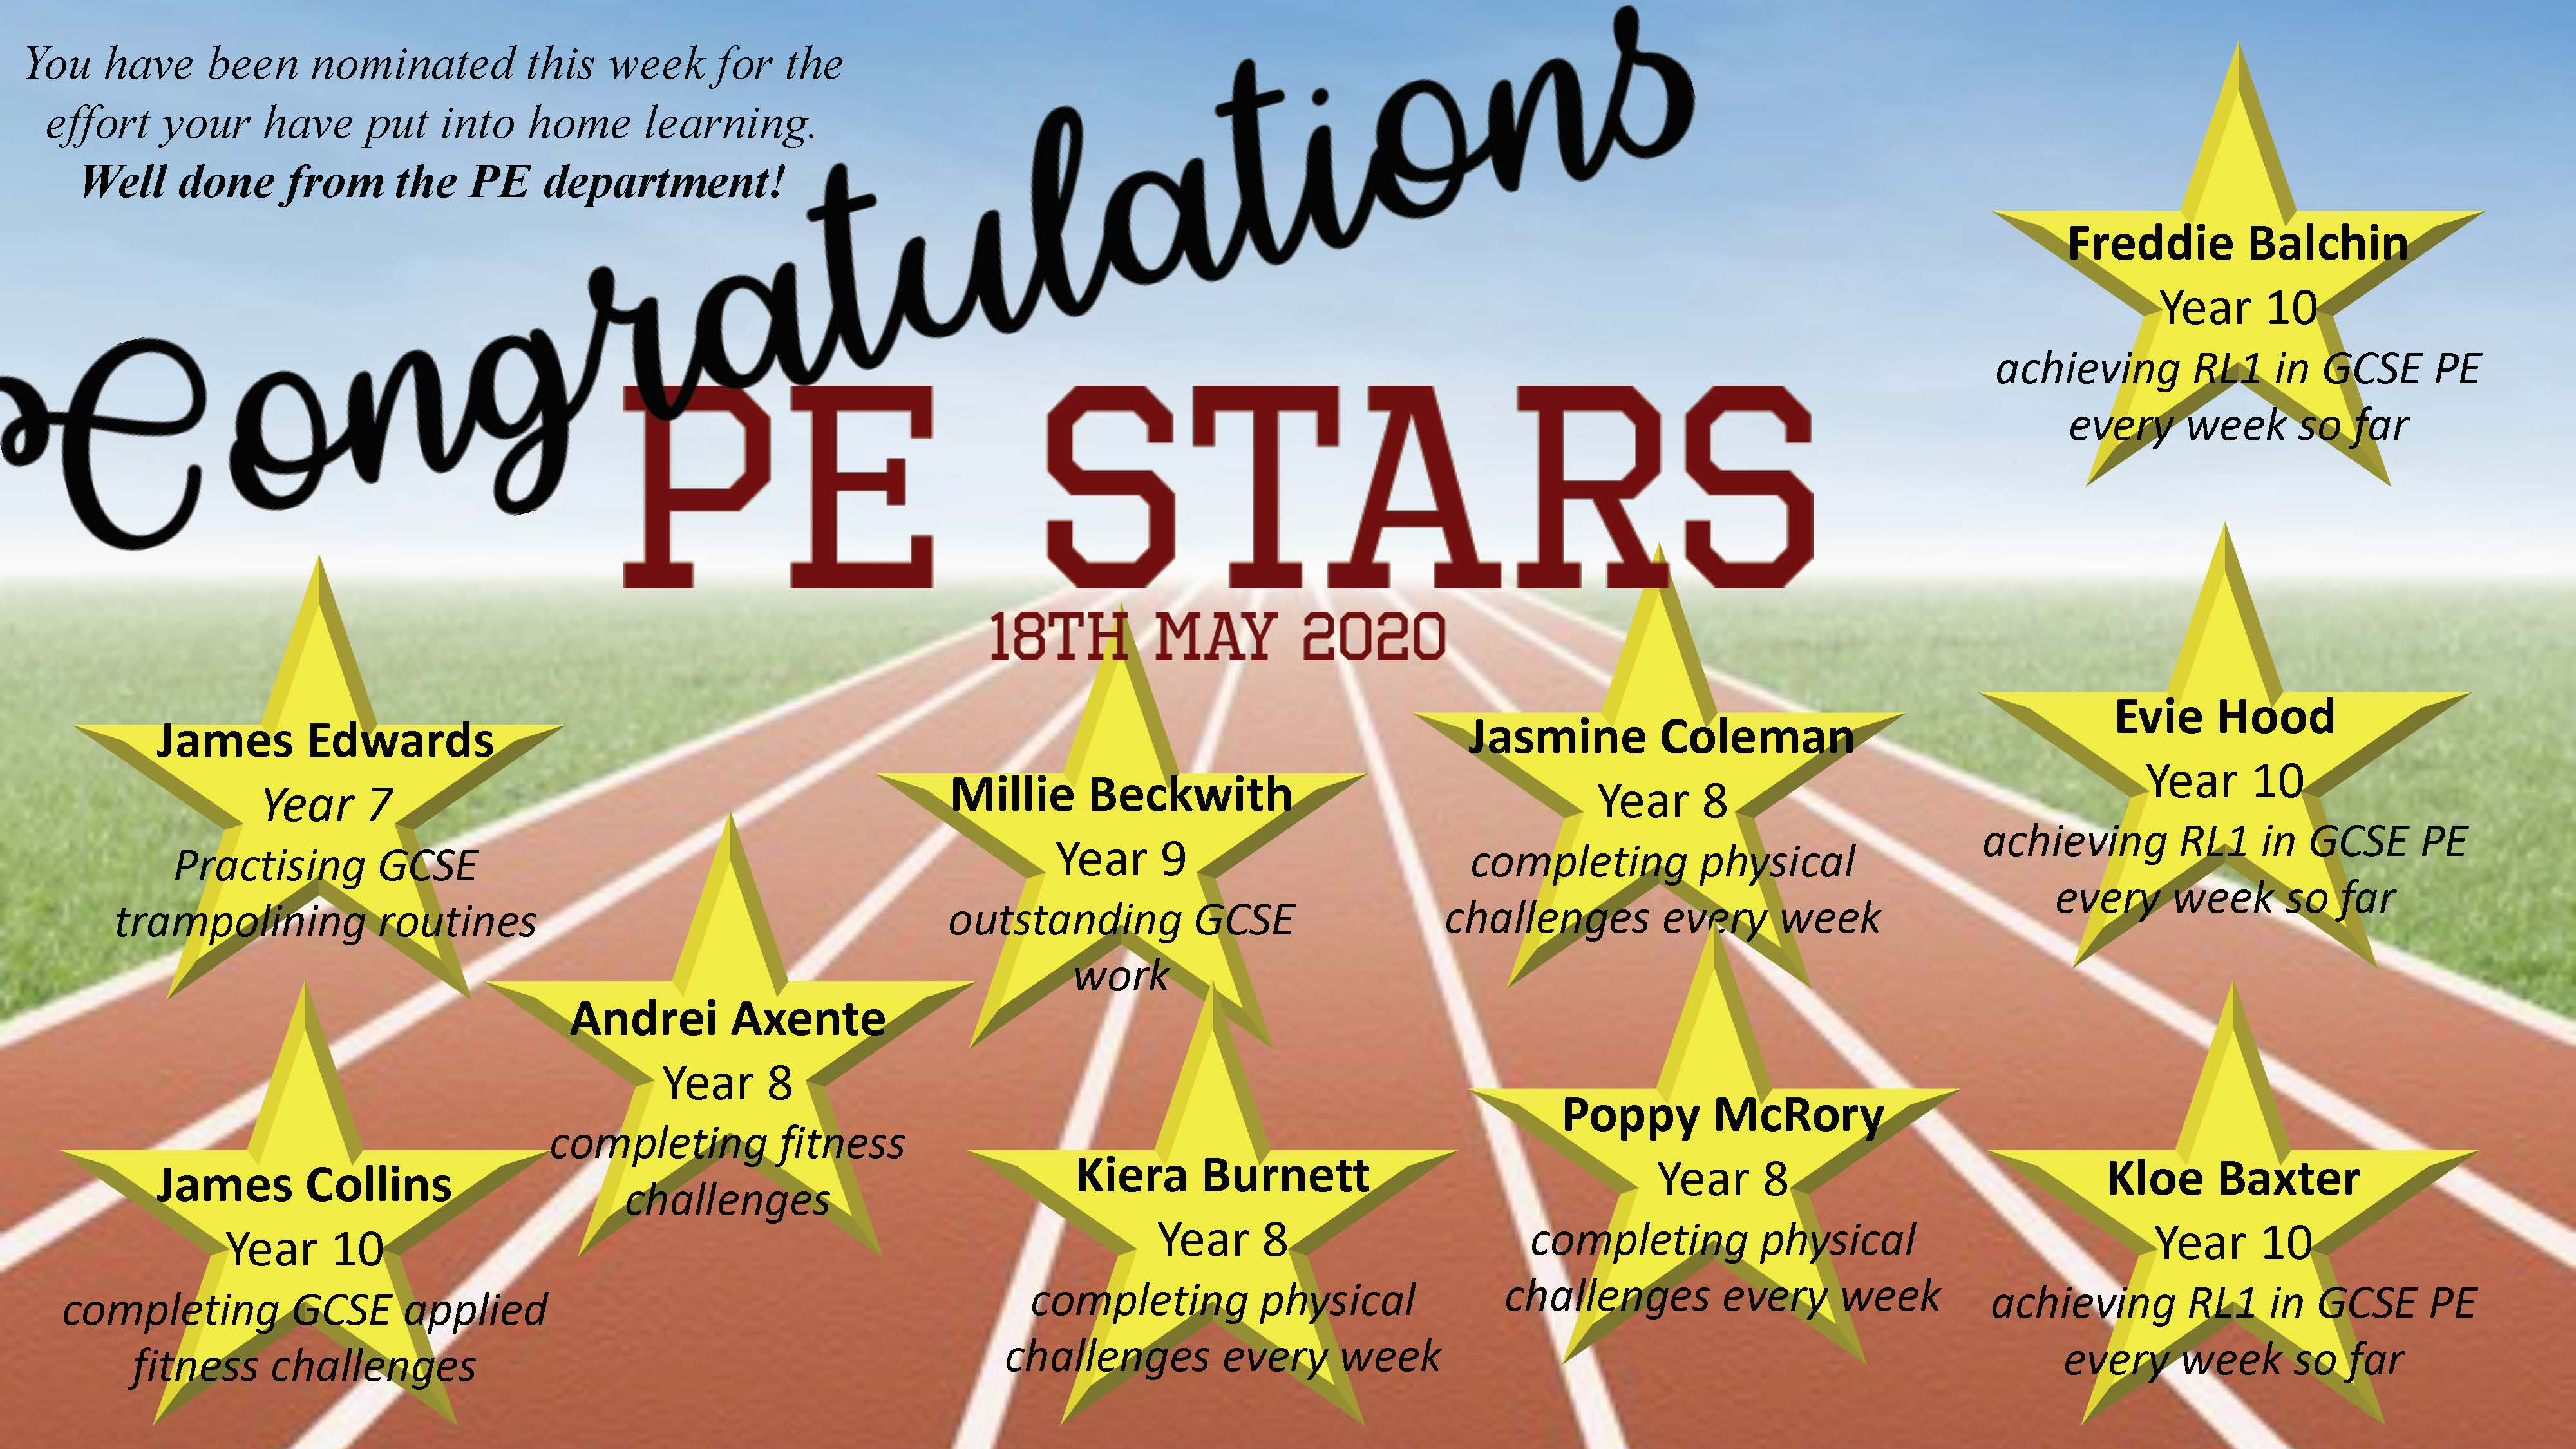 03/06/20 - Home Learning PE Stars Poster